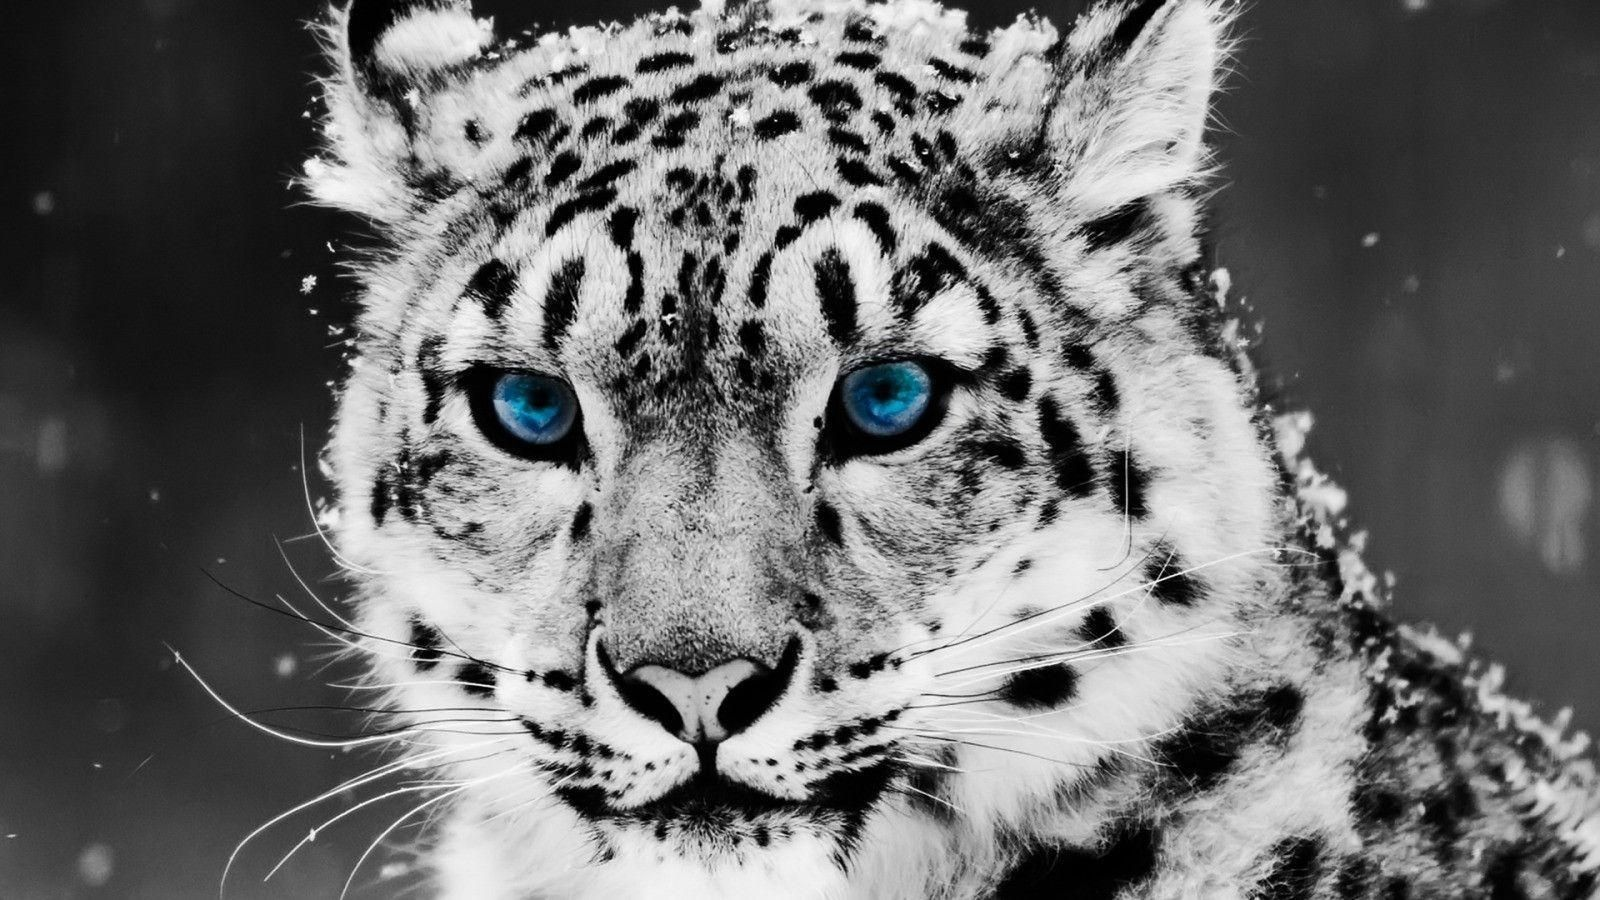 10 Latest Cool Wallpapers Of Animals Full Hd 1080p For Pc Background Snow Leopard Wallpaper Snow Leopard Animals Beautiful